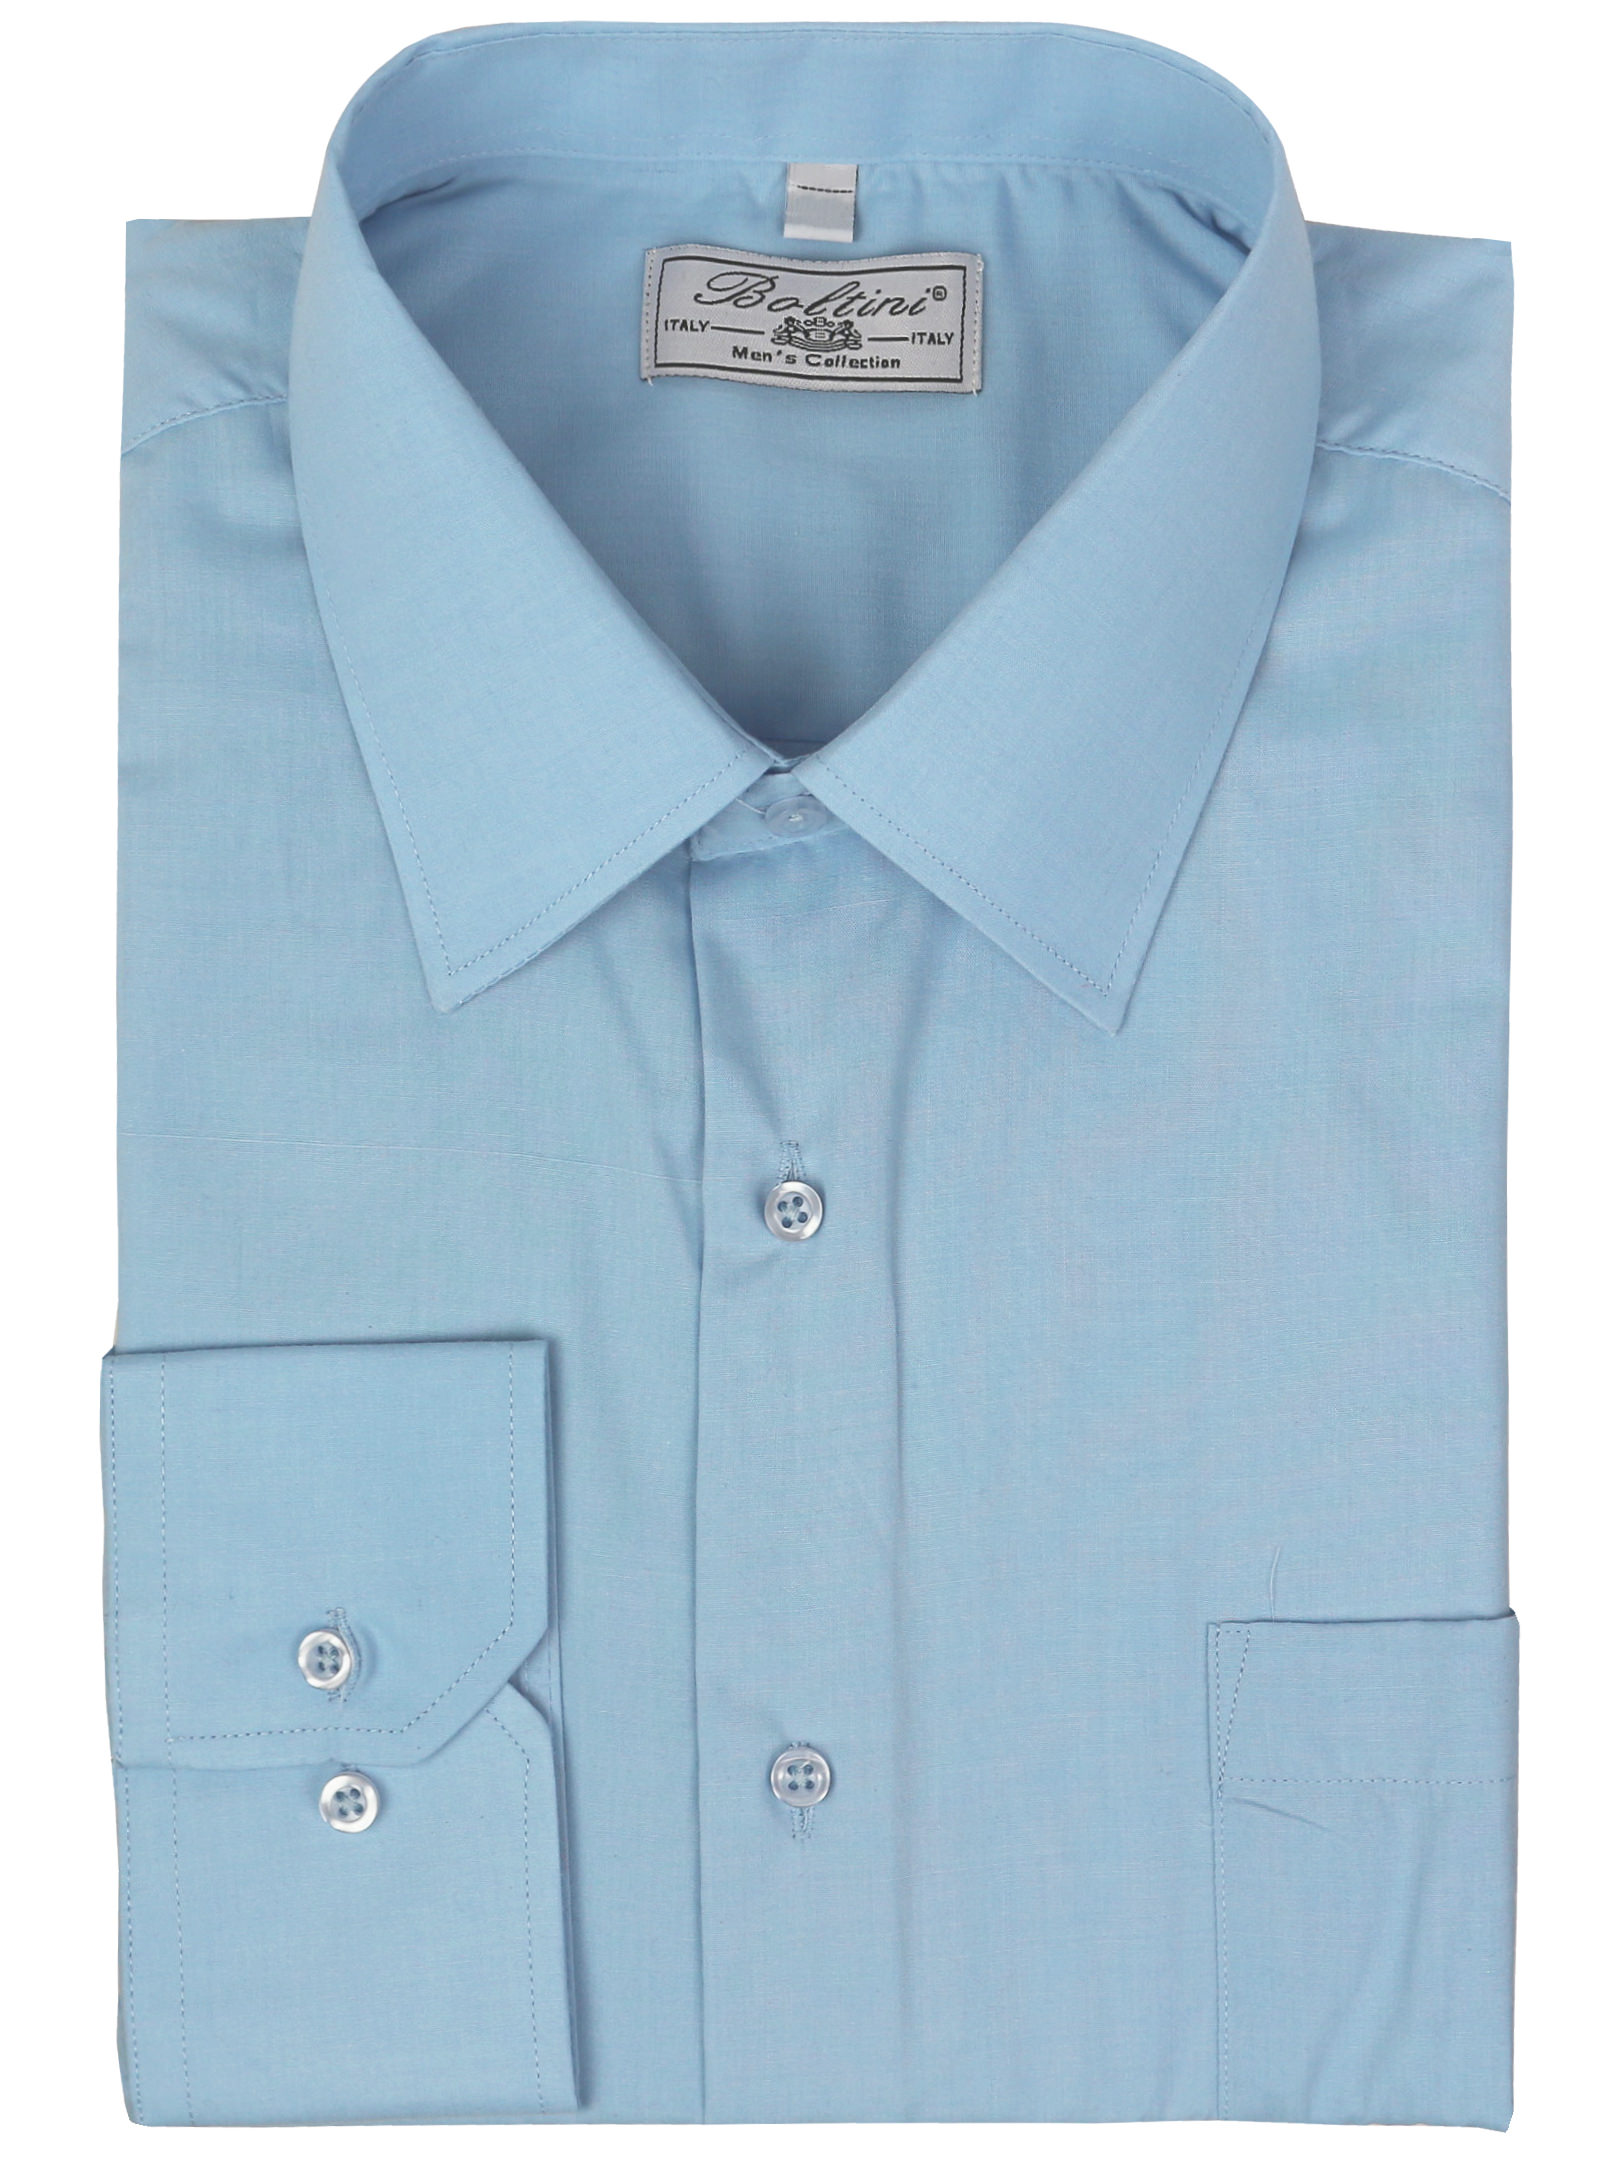 Mens Classic Solid Long Sleeve French Convertible Cuff Dress Shirt